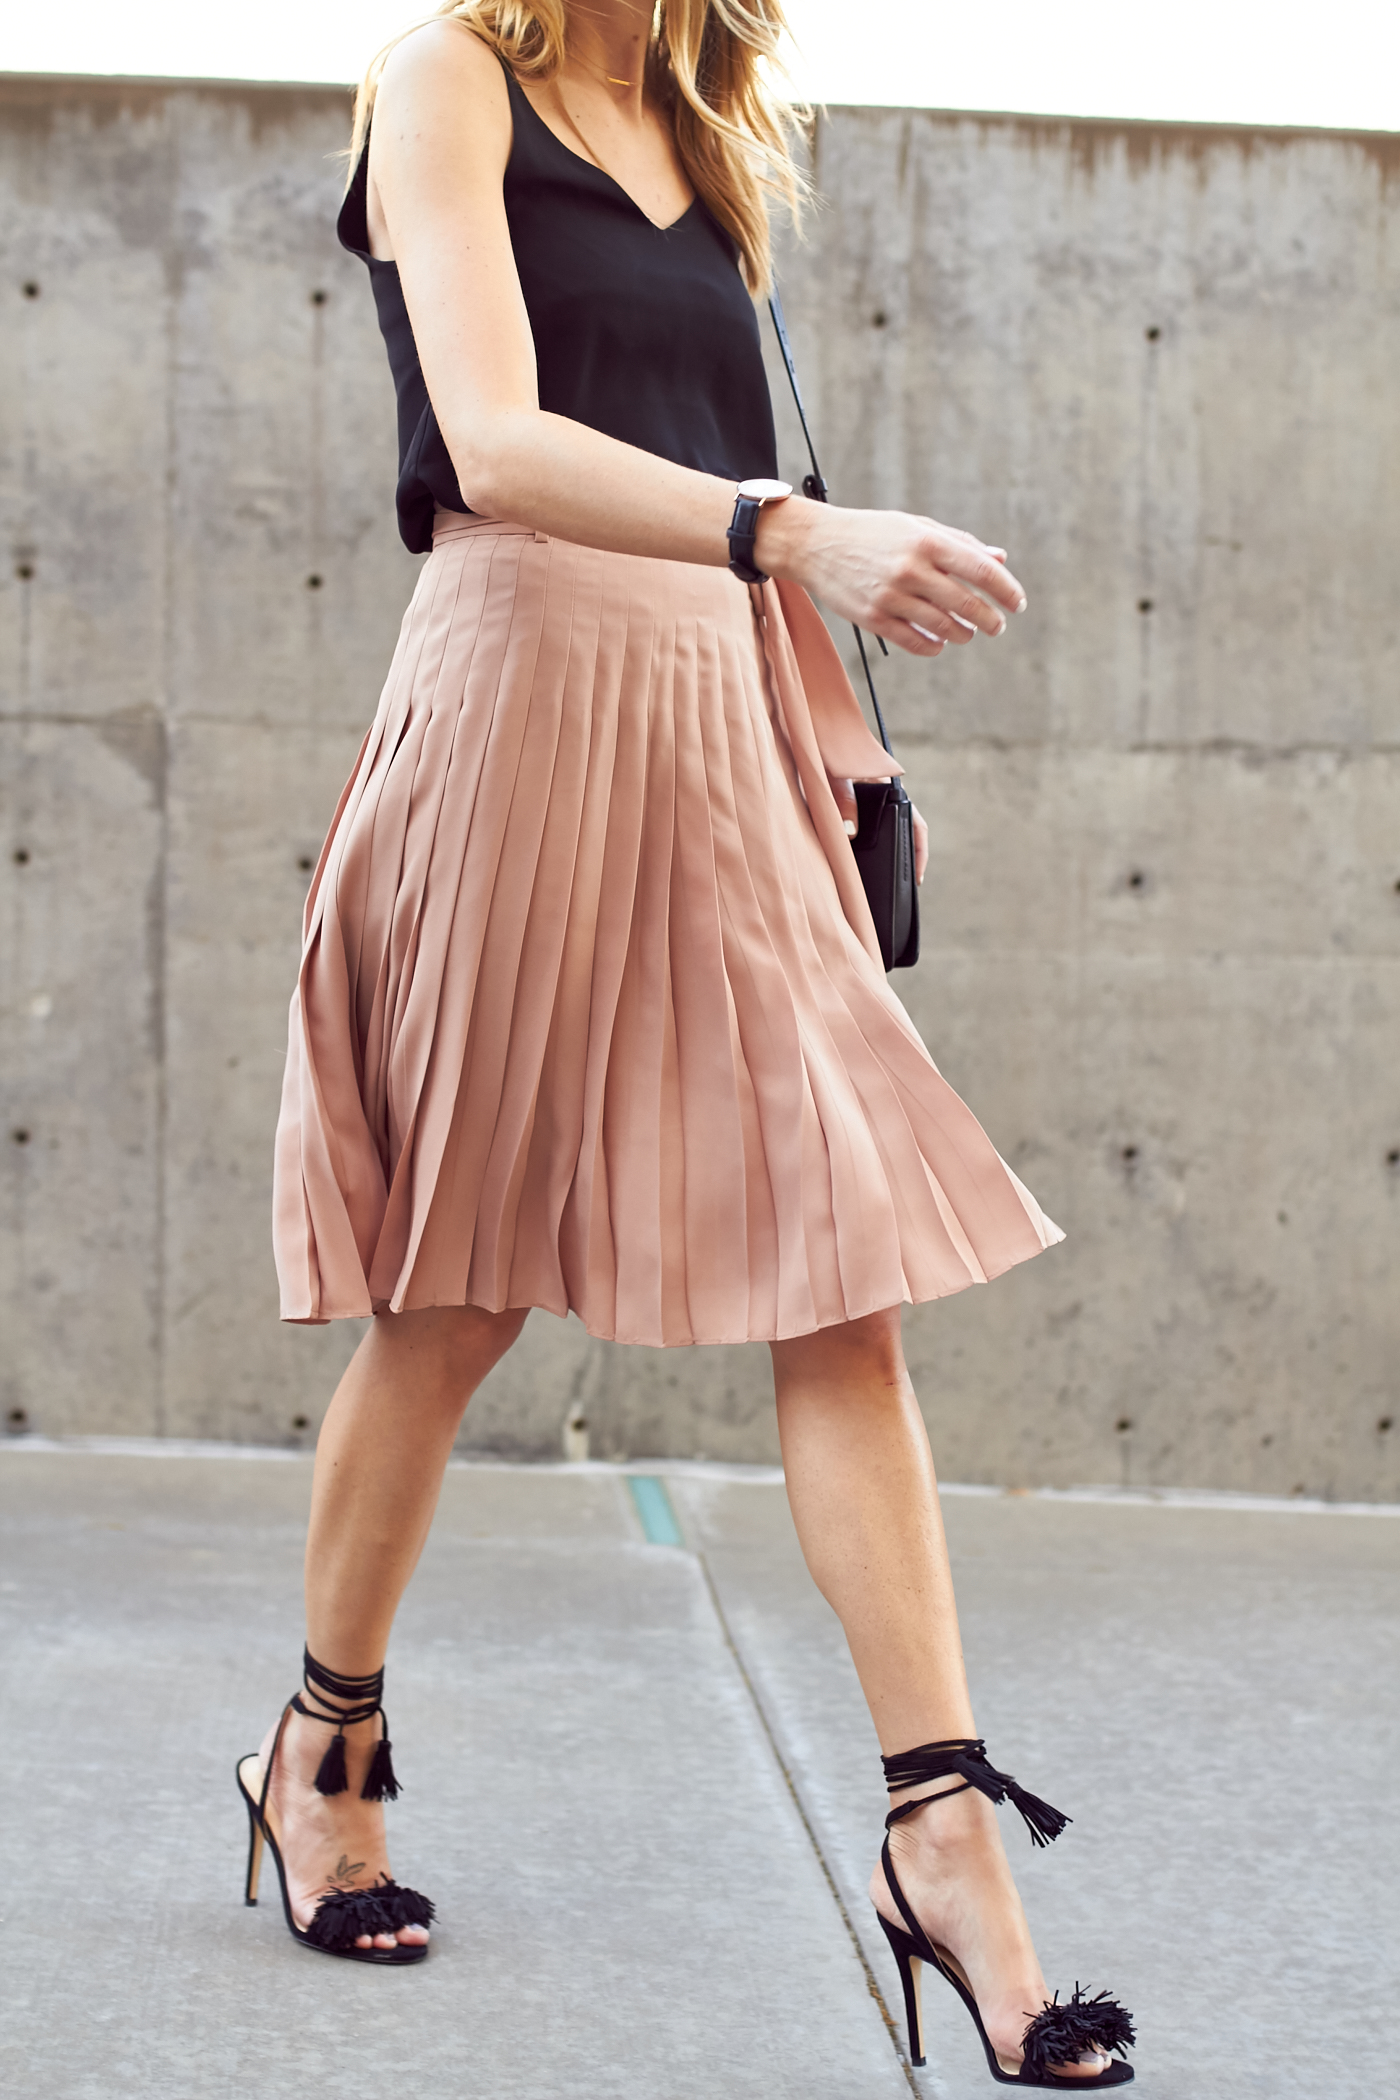 pink pleated skirt fashion jackson